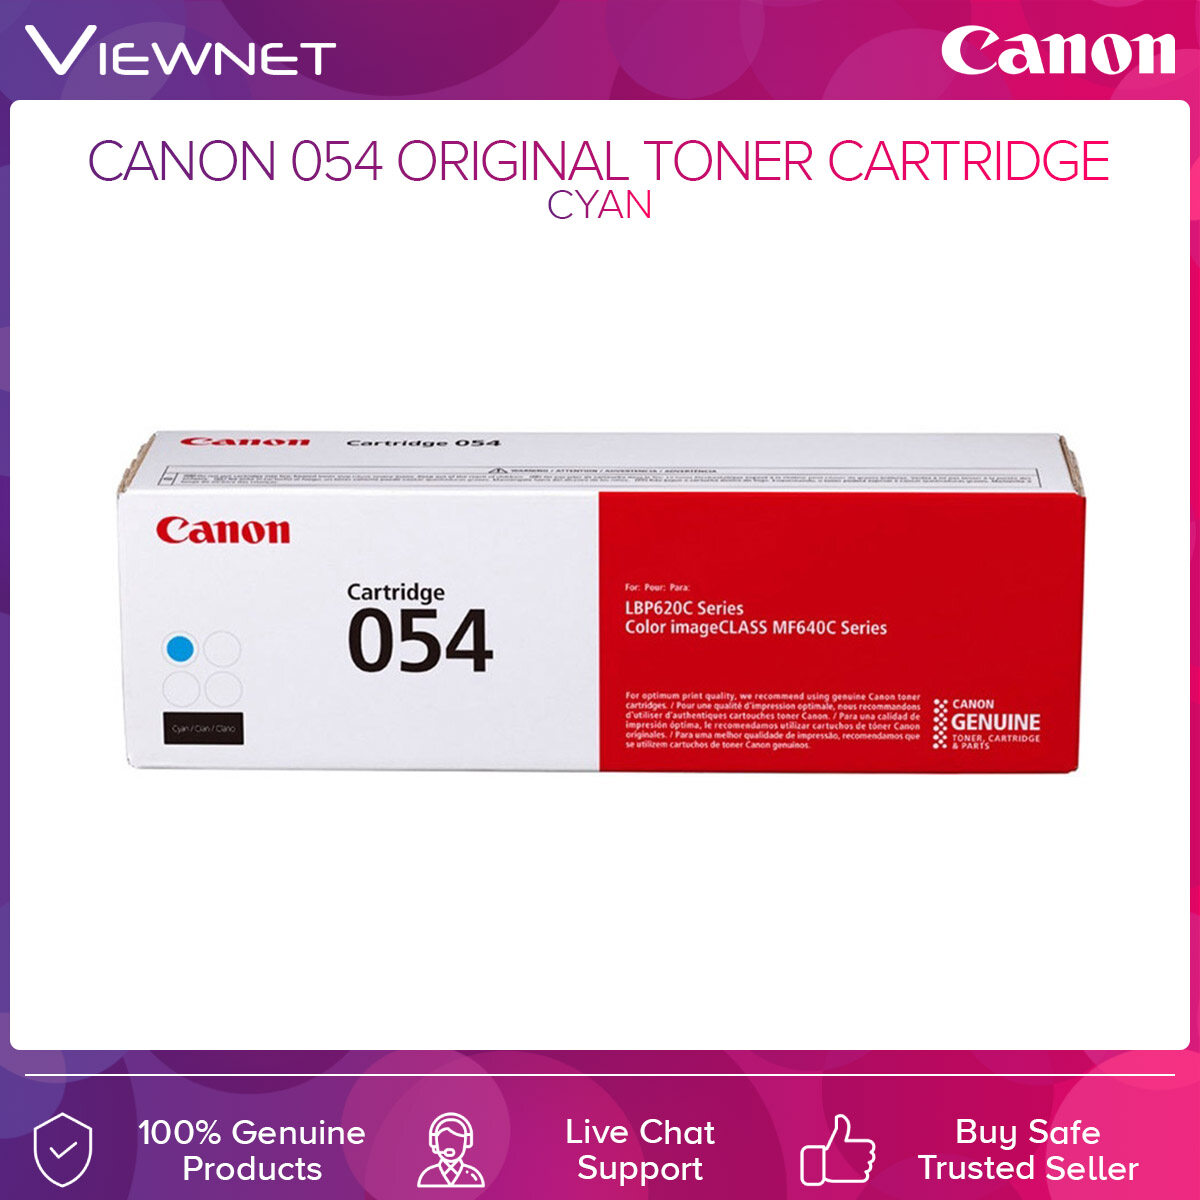 Canon 054 Original Toner Cartridge Black  Cyan  Magenta  Yellow